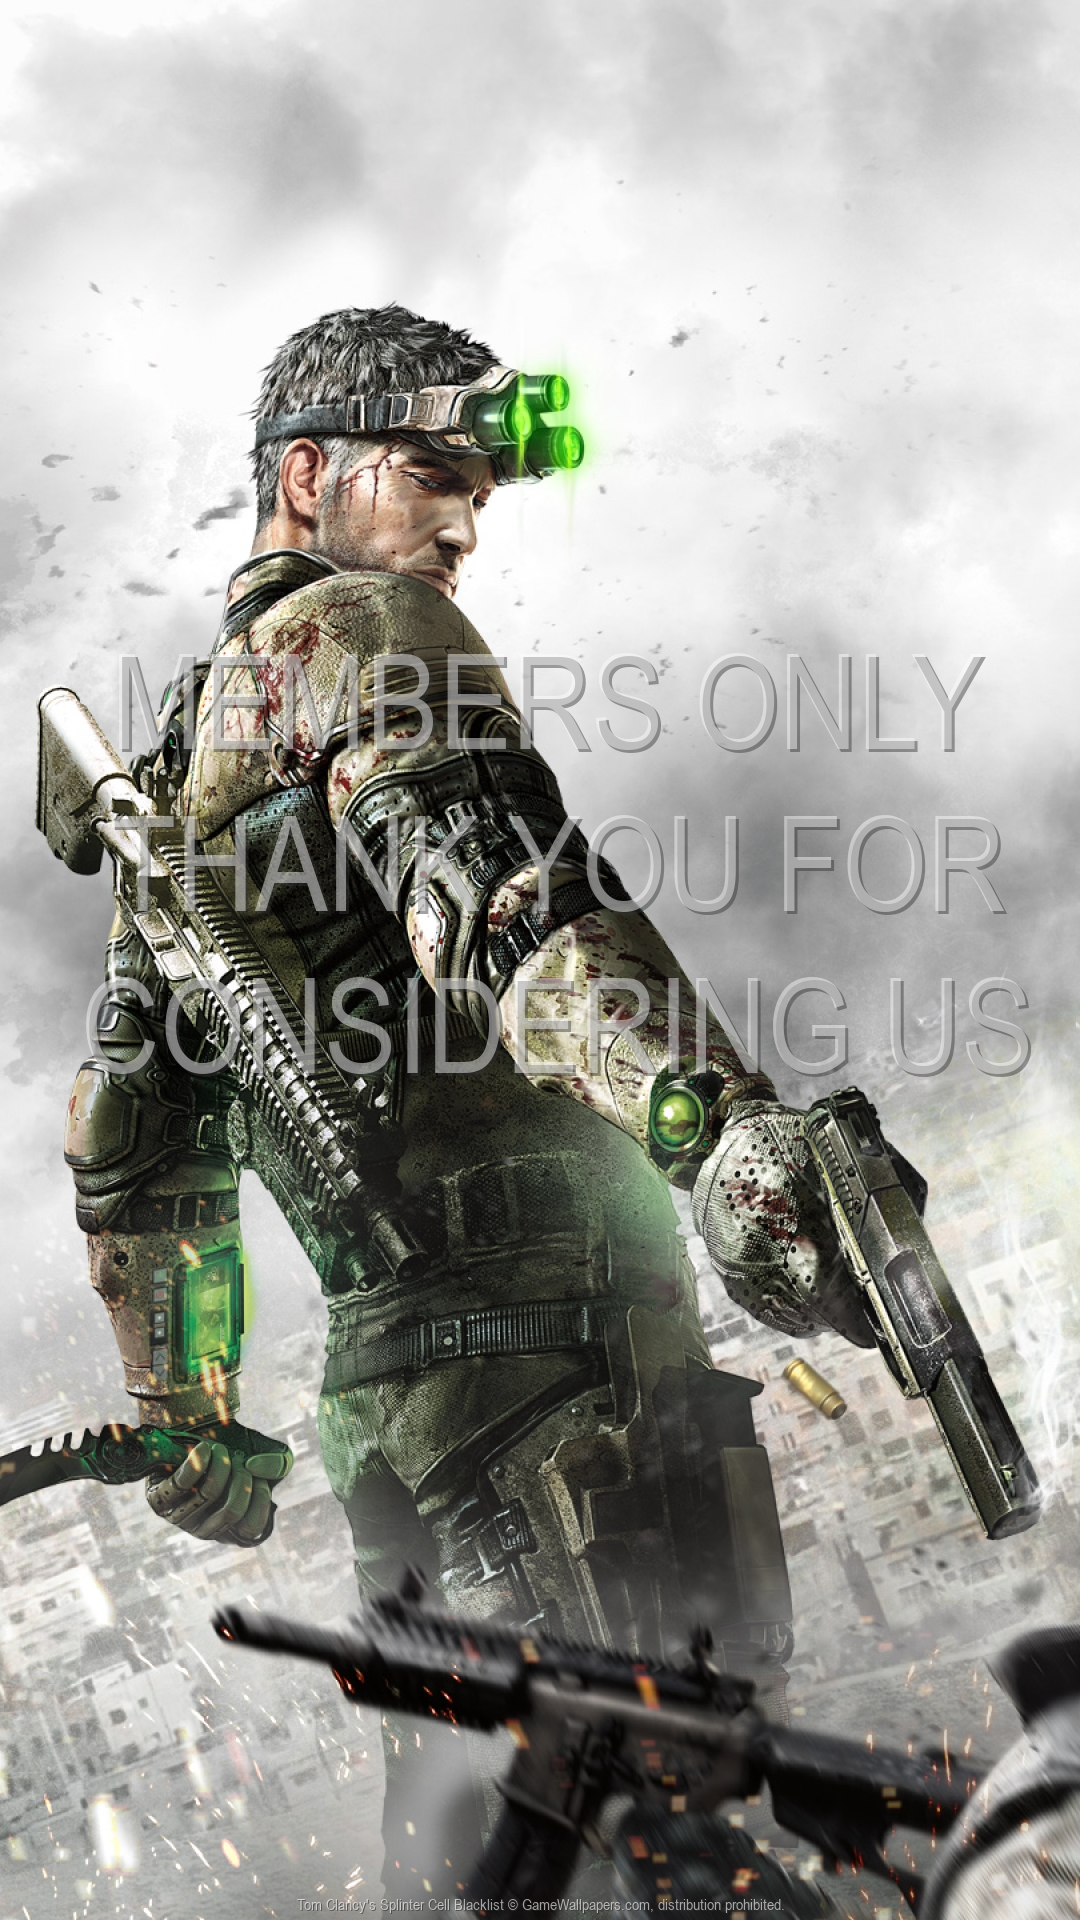 Tom Clancy's Splinter Cell: Blacklist 1920x1080 Handy Hintergrundbild 03